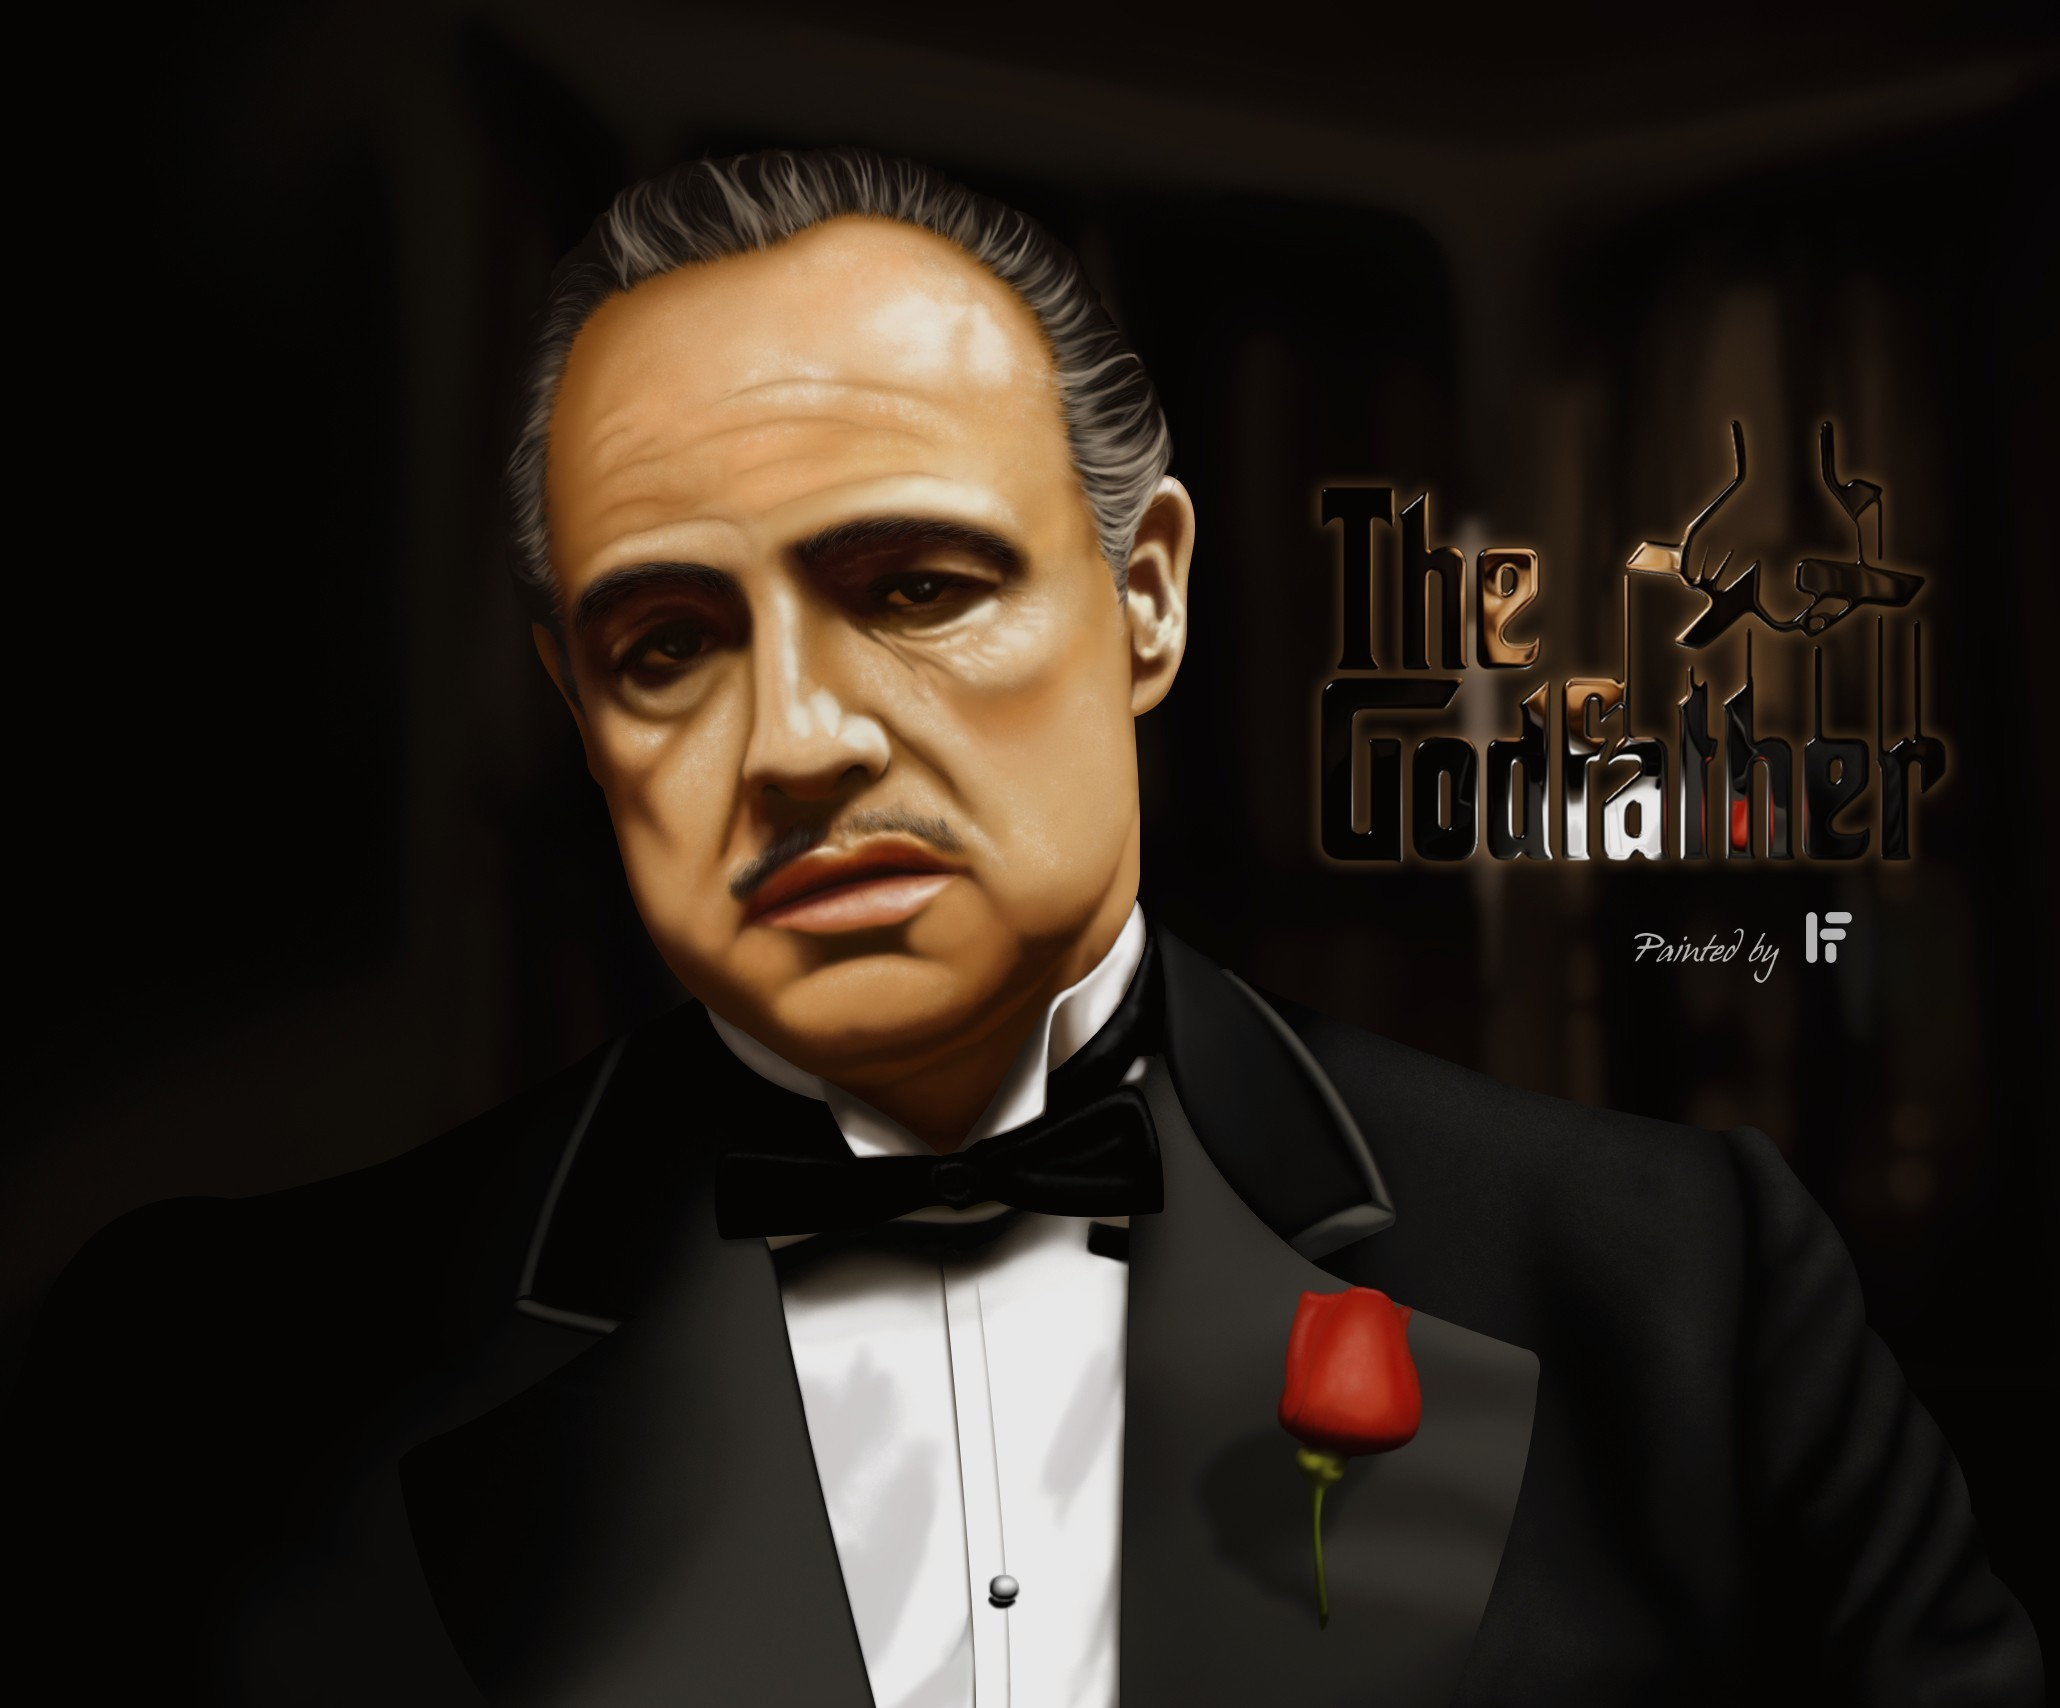 Res: 2060x1708, The Godfather wallpaper